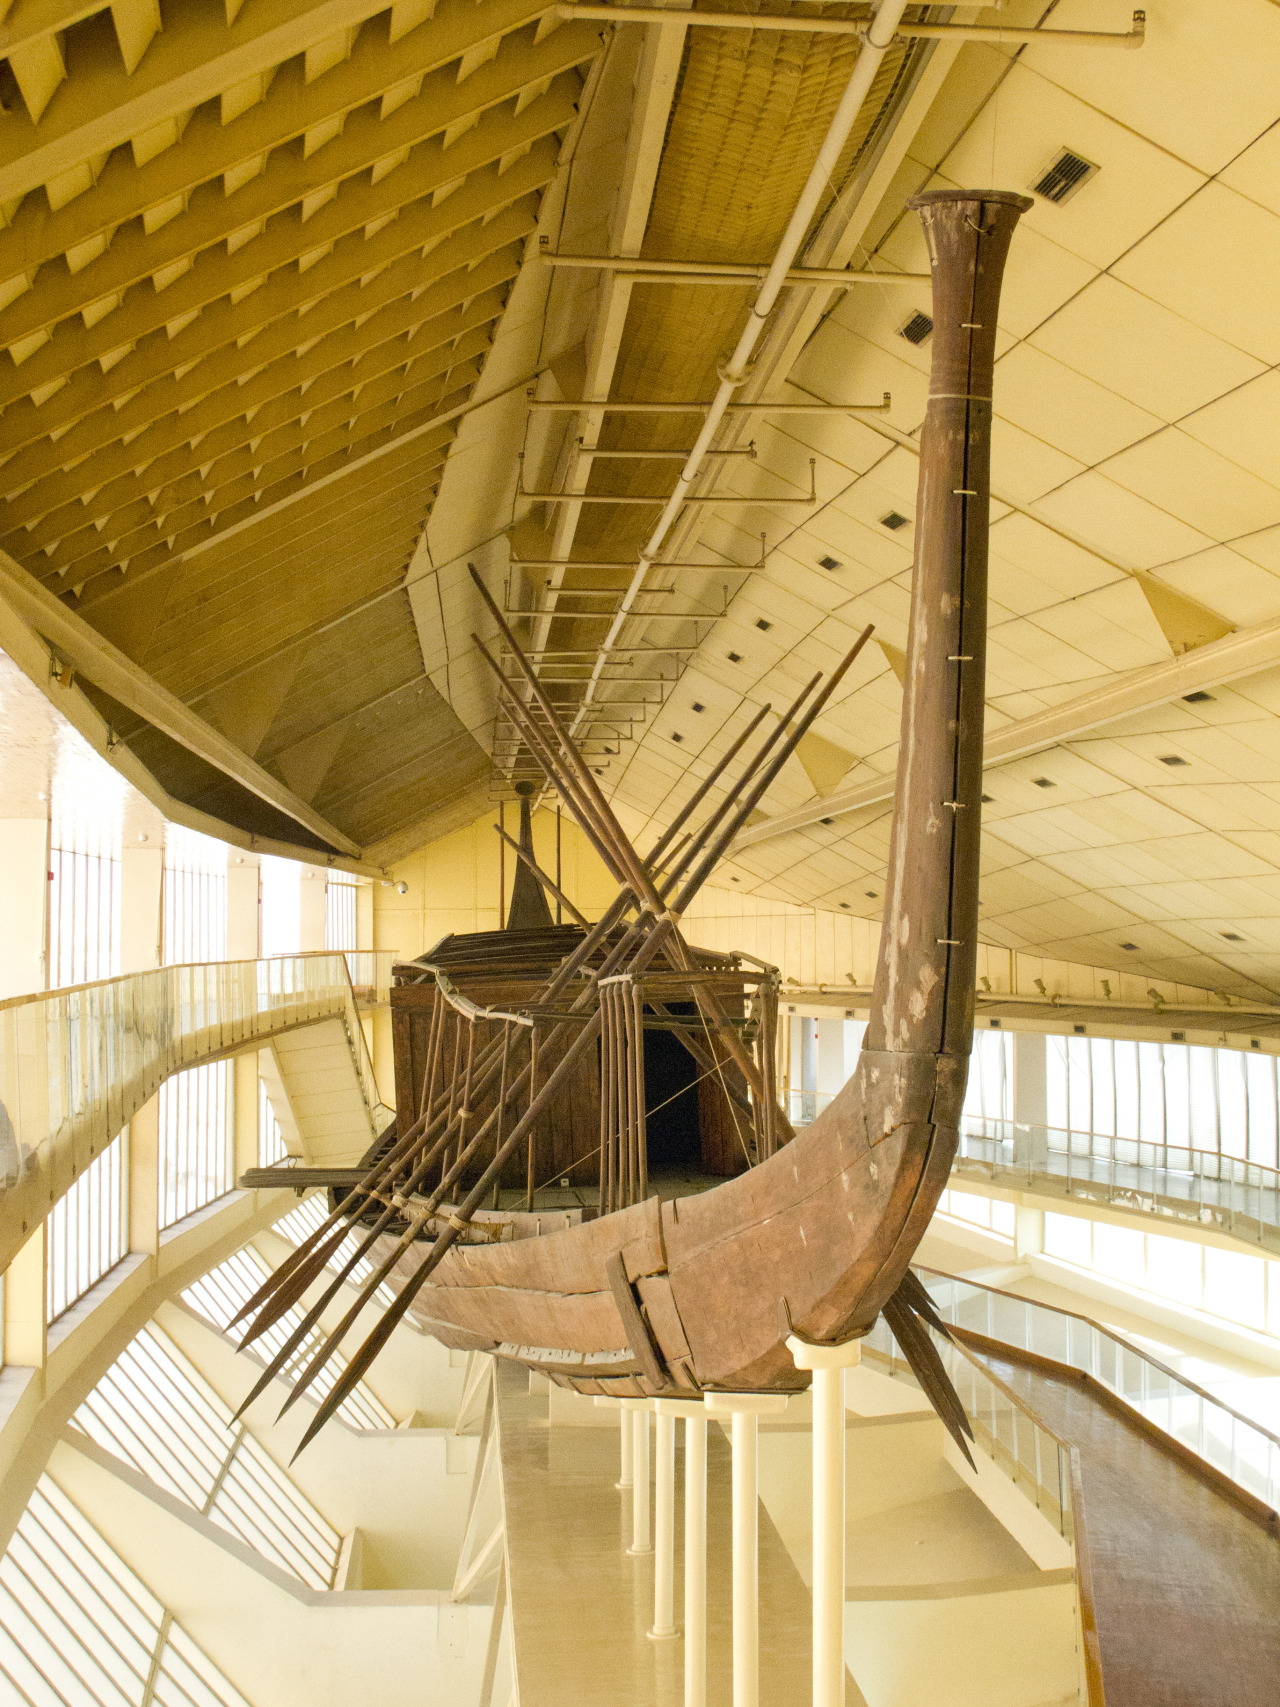 ancientart :     The Khufu ship which was buried  within   Khufu's Pyramid Complex, Giza, Egypt. Dates to about 2650 BC.      The great surviving masterpiece of Old Kingdom shipbuilding is the funerary boat of Khufu, the builder of the Great Pyramid at Giza. […] The Khufu boat was found in a sealed pit next to the Great Pyramid at Giza. Originally there were five boats buried next to the pyramid, of which all but two had been removed in antiquity. The ship is built primarily of cedar, which must have been imported from Syria-Palestine.    […] The function of the vessel is still controversial. Some believe that is was a 'solar' boat, intended to take the dead king on journeys through the heaven with the sun. Others see it simply as the vessel which ferried the king from his residence to the tomb on his funeral day. Others would argue that it was a official vessel that had been used by the Pharaoh on ceremonial occasions. It is impossible to say whether any of the proposed uses would preclude any of the others -in other words, all these theories could be correct. Clearly these fine dimensions would rule out any possibility that it was anything other than a ceremonial vessel of some sort.   -Steve Vinson,  Egyptian Boats and Ships .     Courtesy & currently located at the The Khufu Boat Museum at the Giza pyramid complex. Photo taken by  kairoinfo4u .